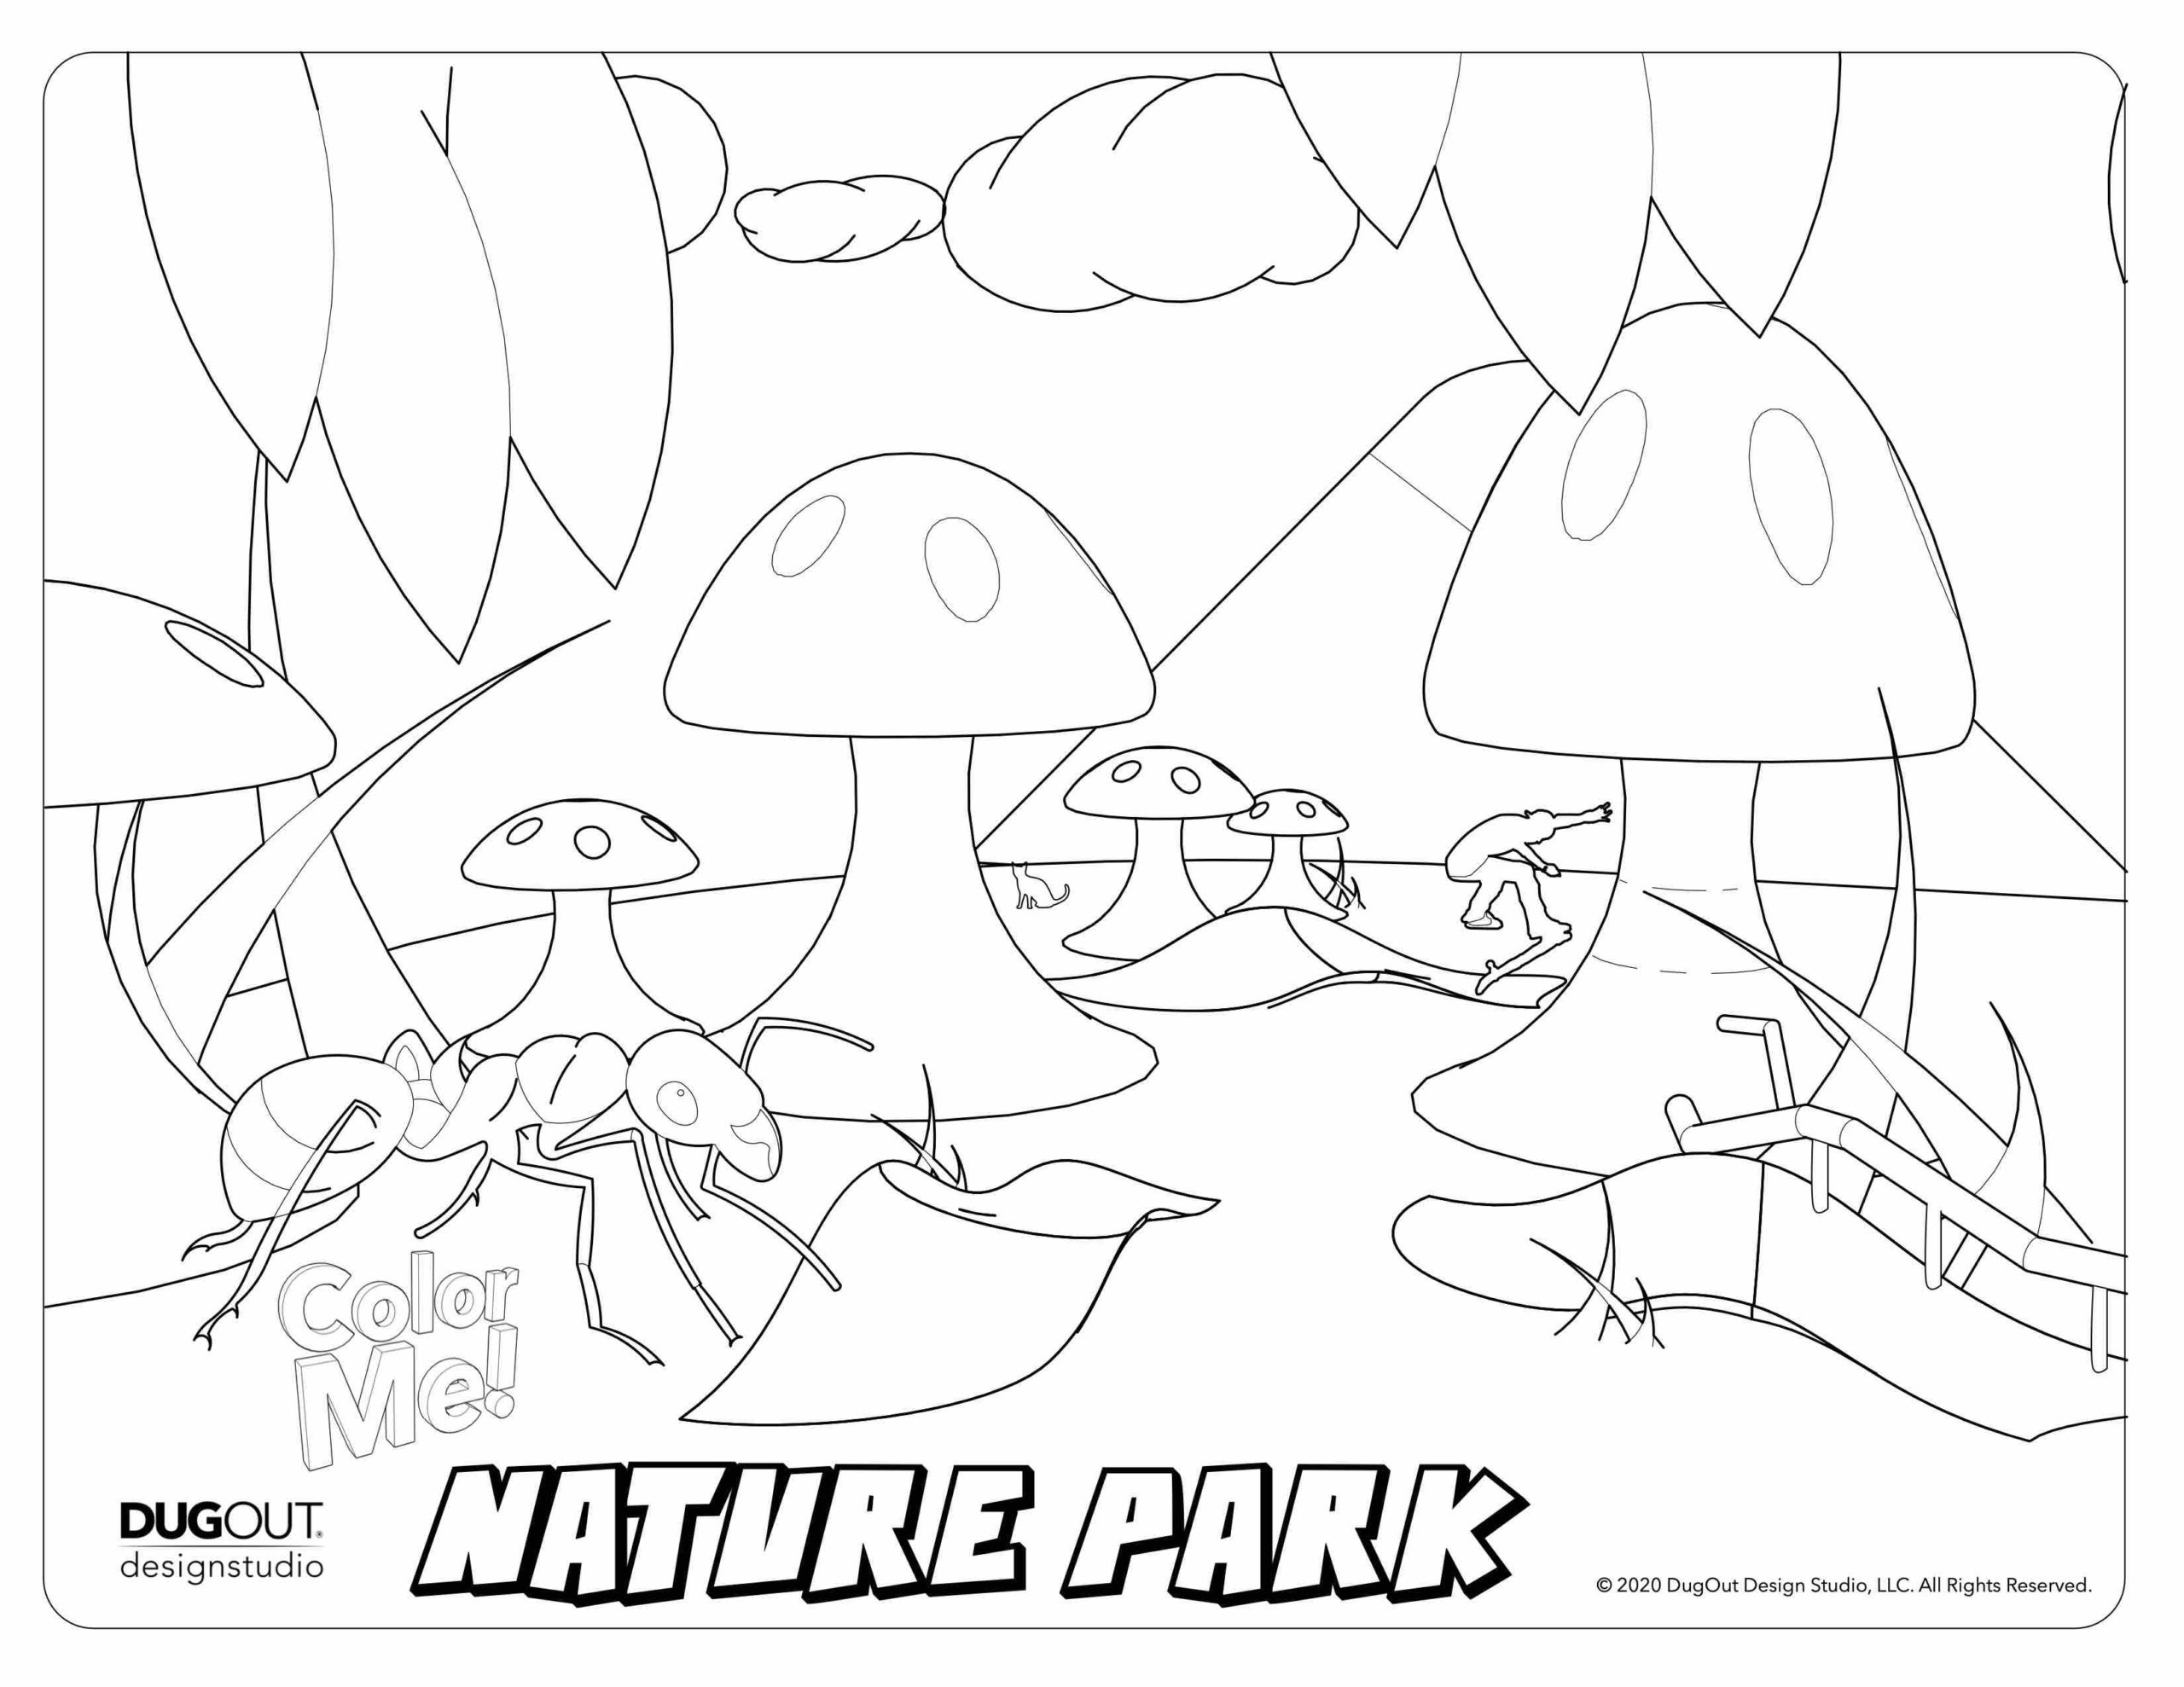 Nature park coloring page with large ant and mushrooms